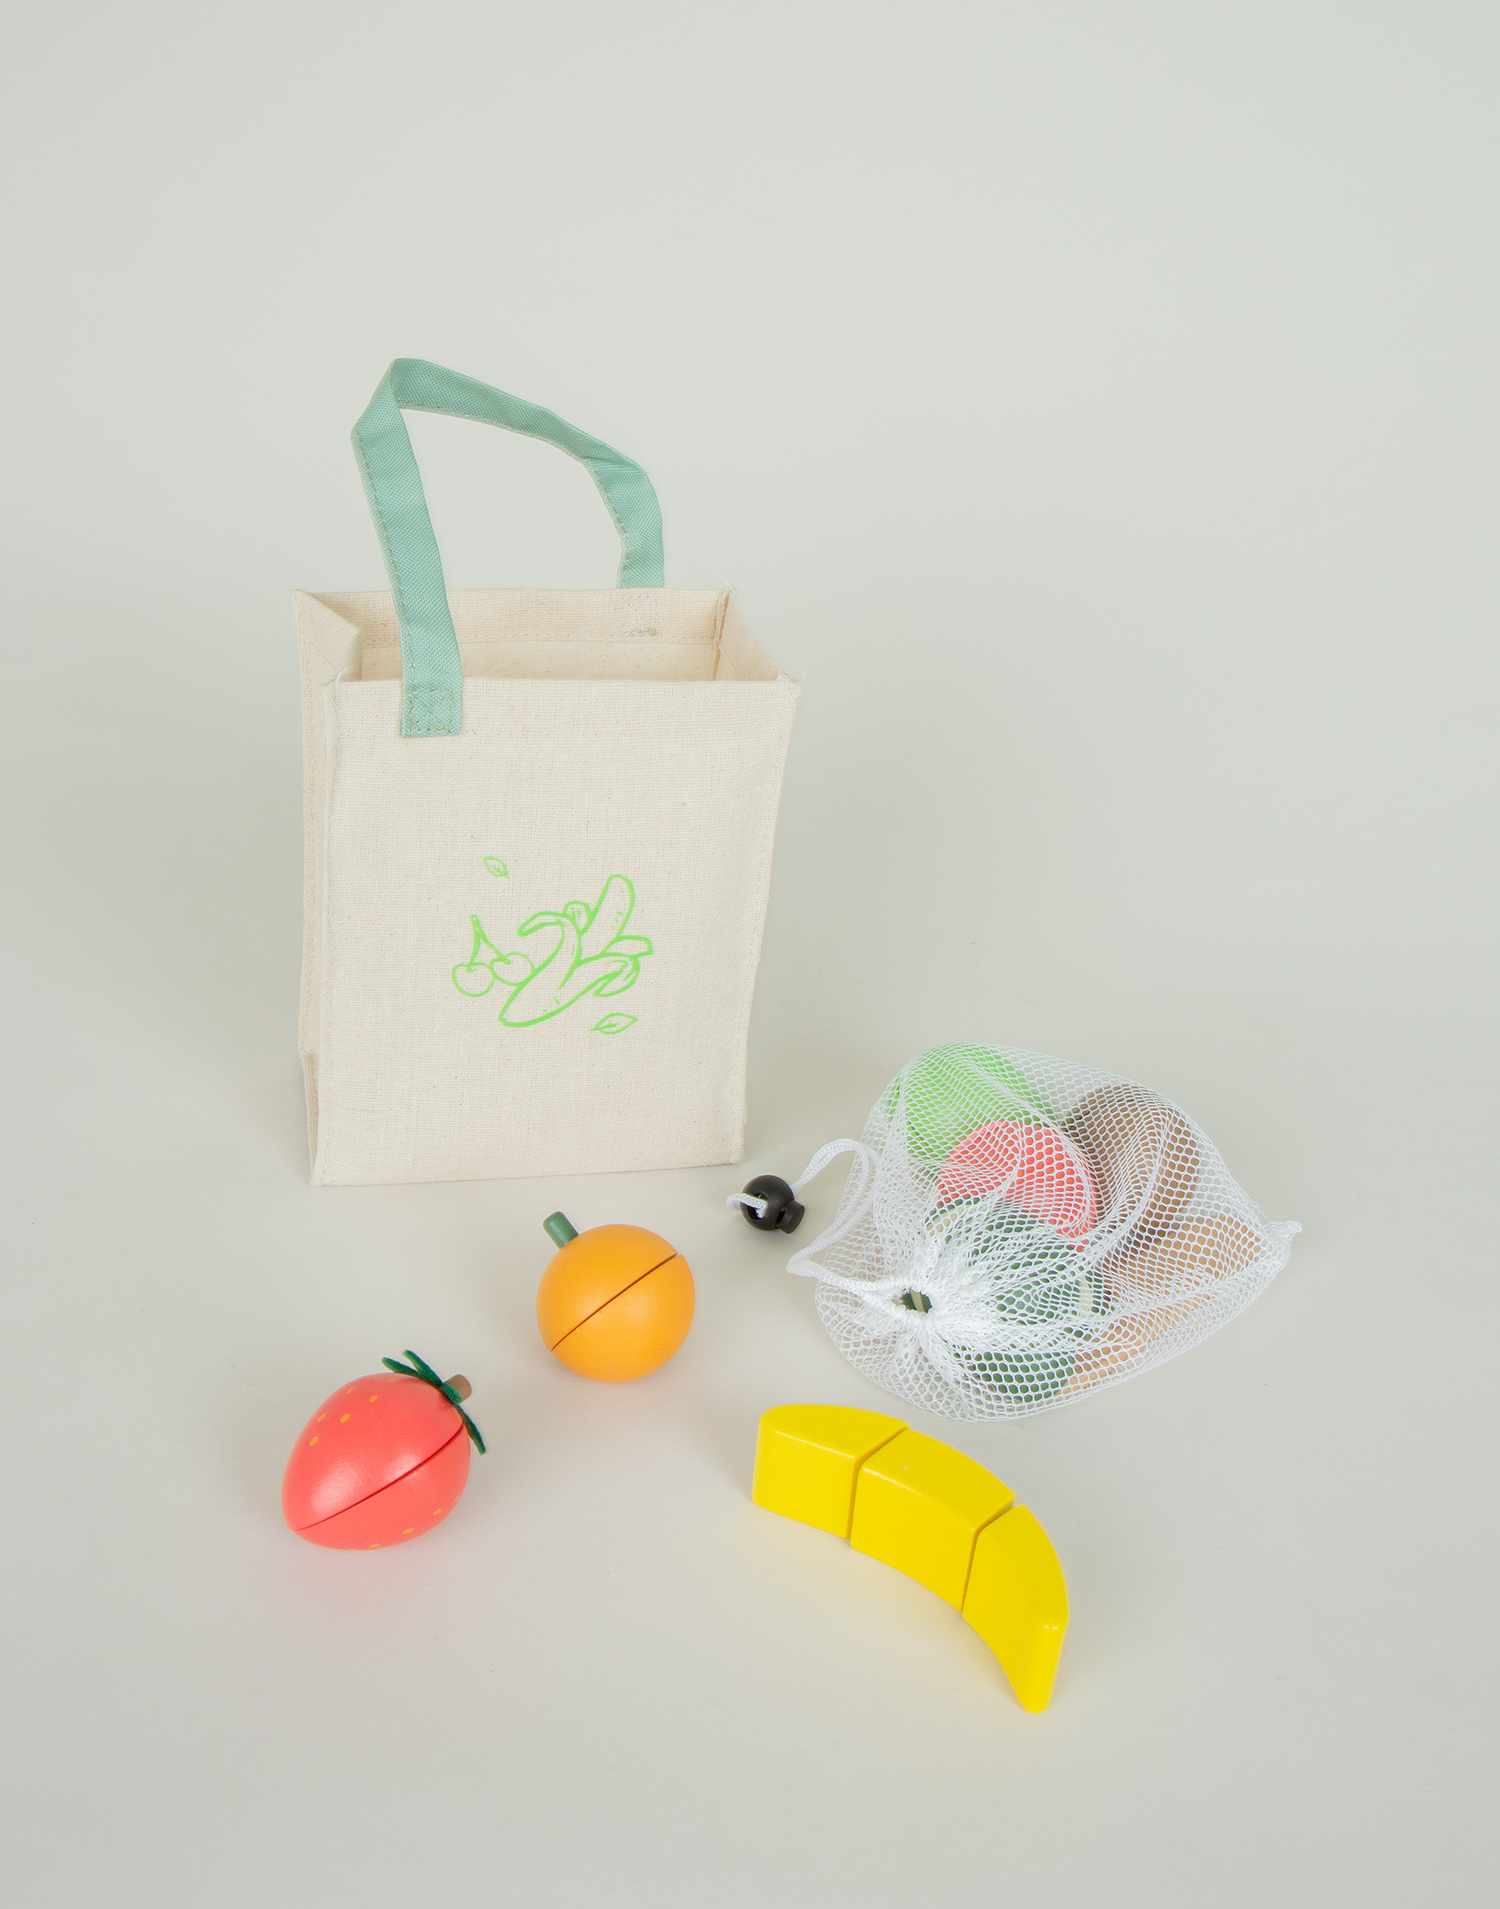 Toy fruits kit